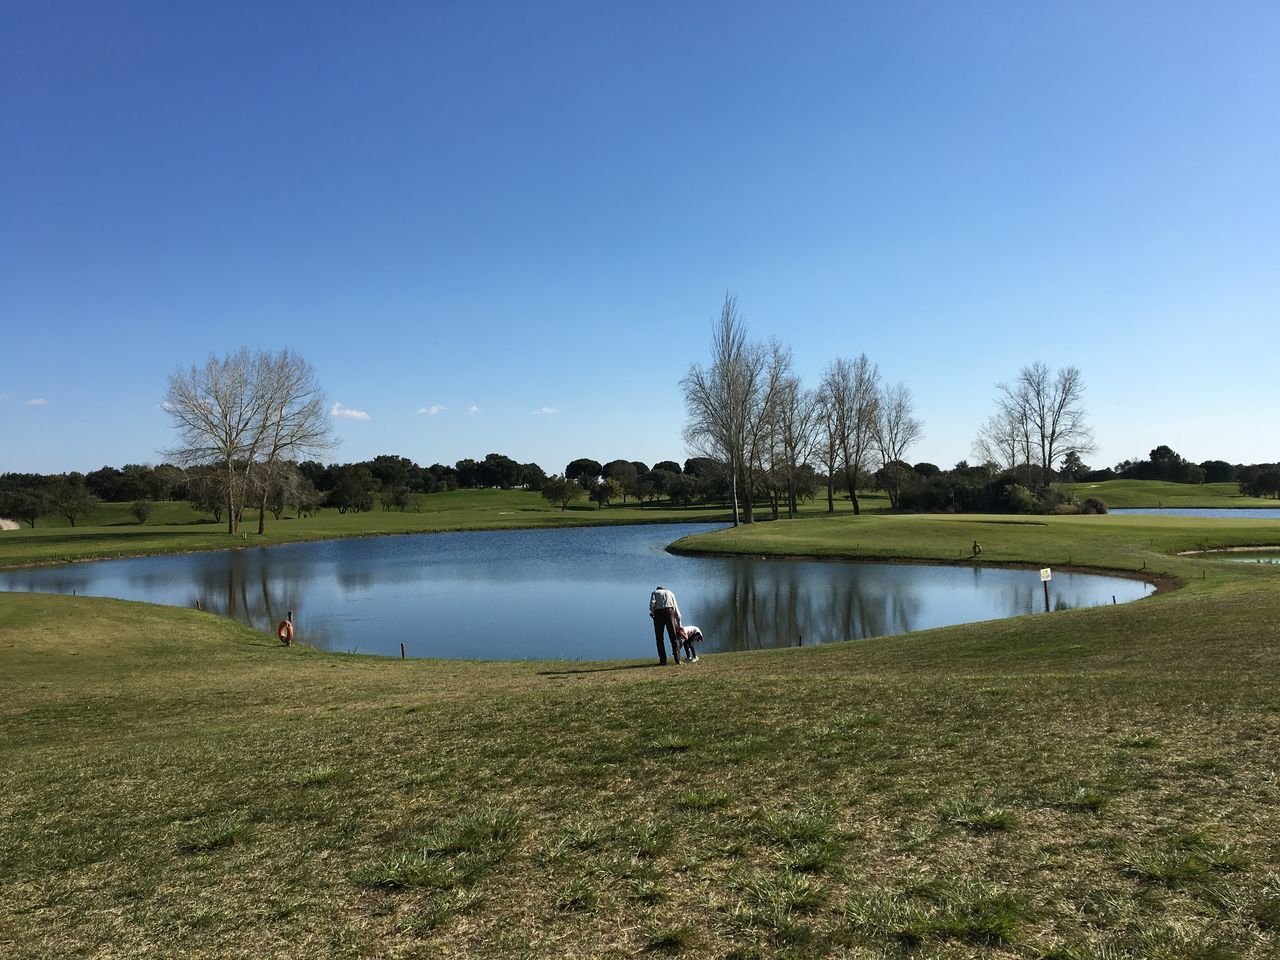 Adult Blue Clear Sky Day Full Length Golf Golf Club Golf Course Golfer Grass Green - Golf Course Lake Leisure Activity Men Nature One Person Outdoors People Relaxation Sport Standing Tranquil Scene Tranquility Tree Water